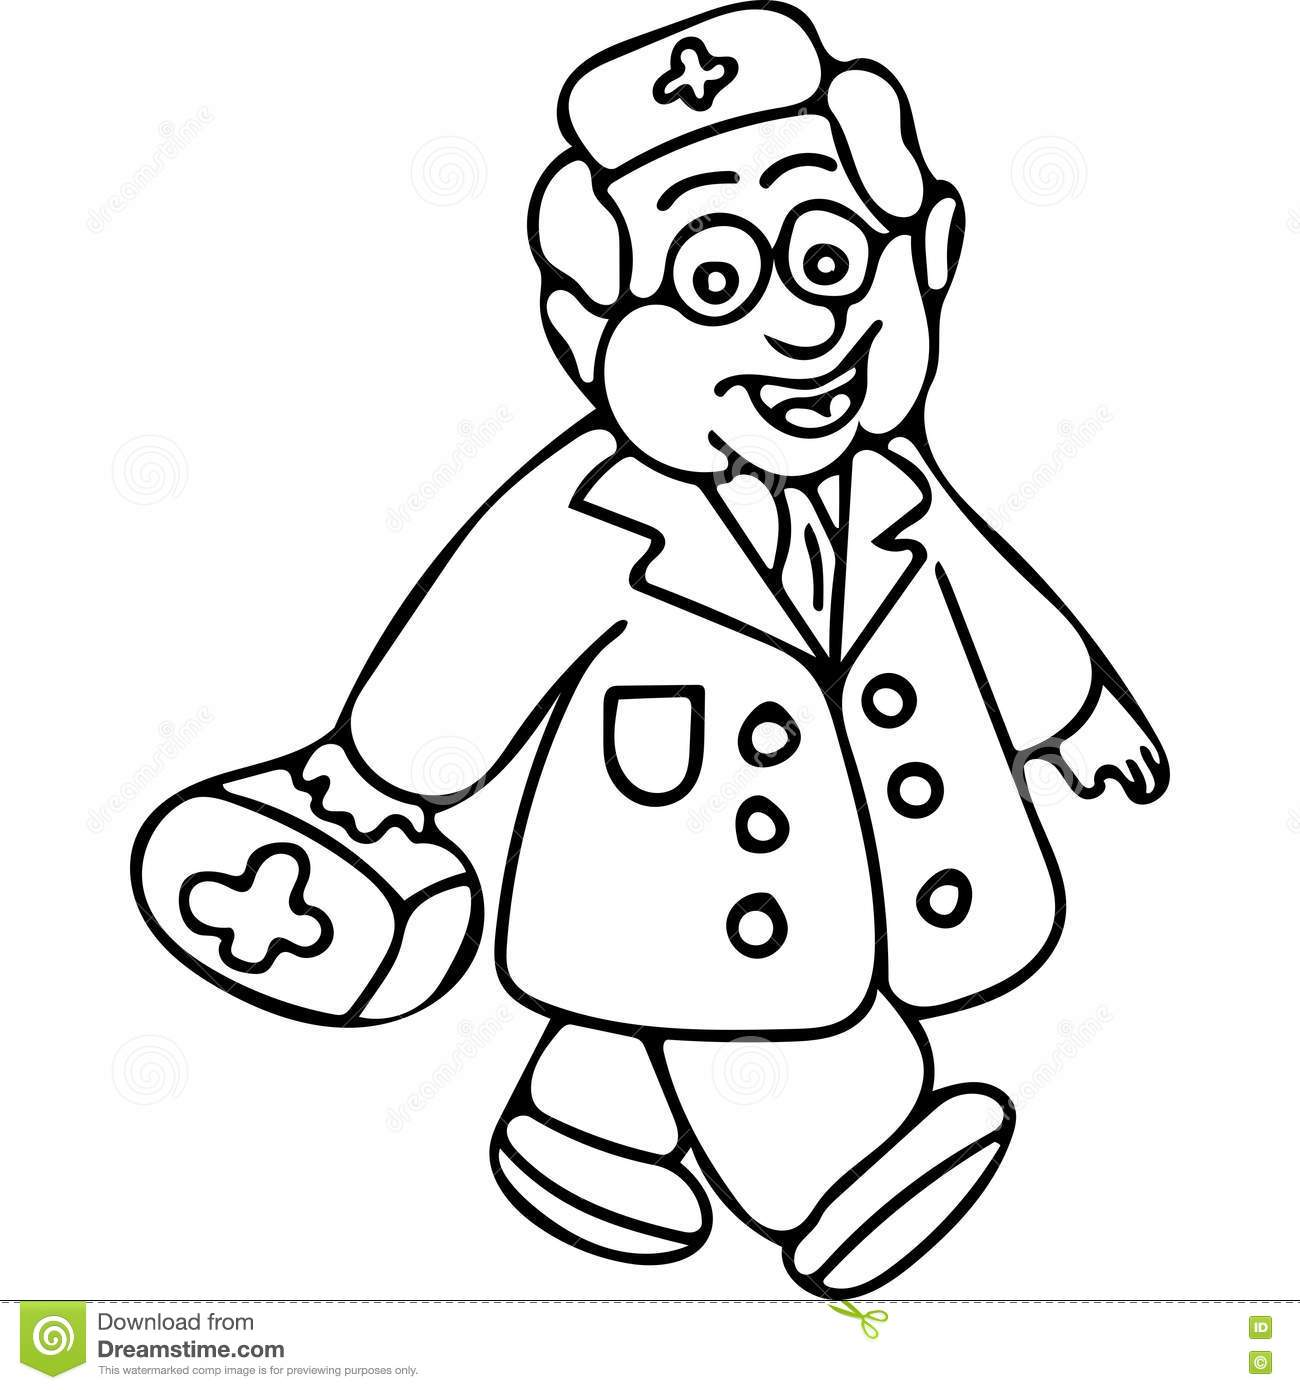 doctor book kids coloring page stock illustration image 78796484